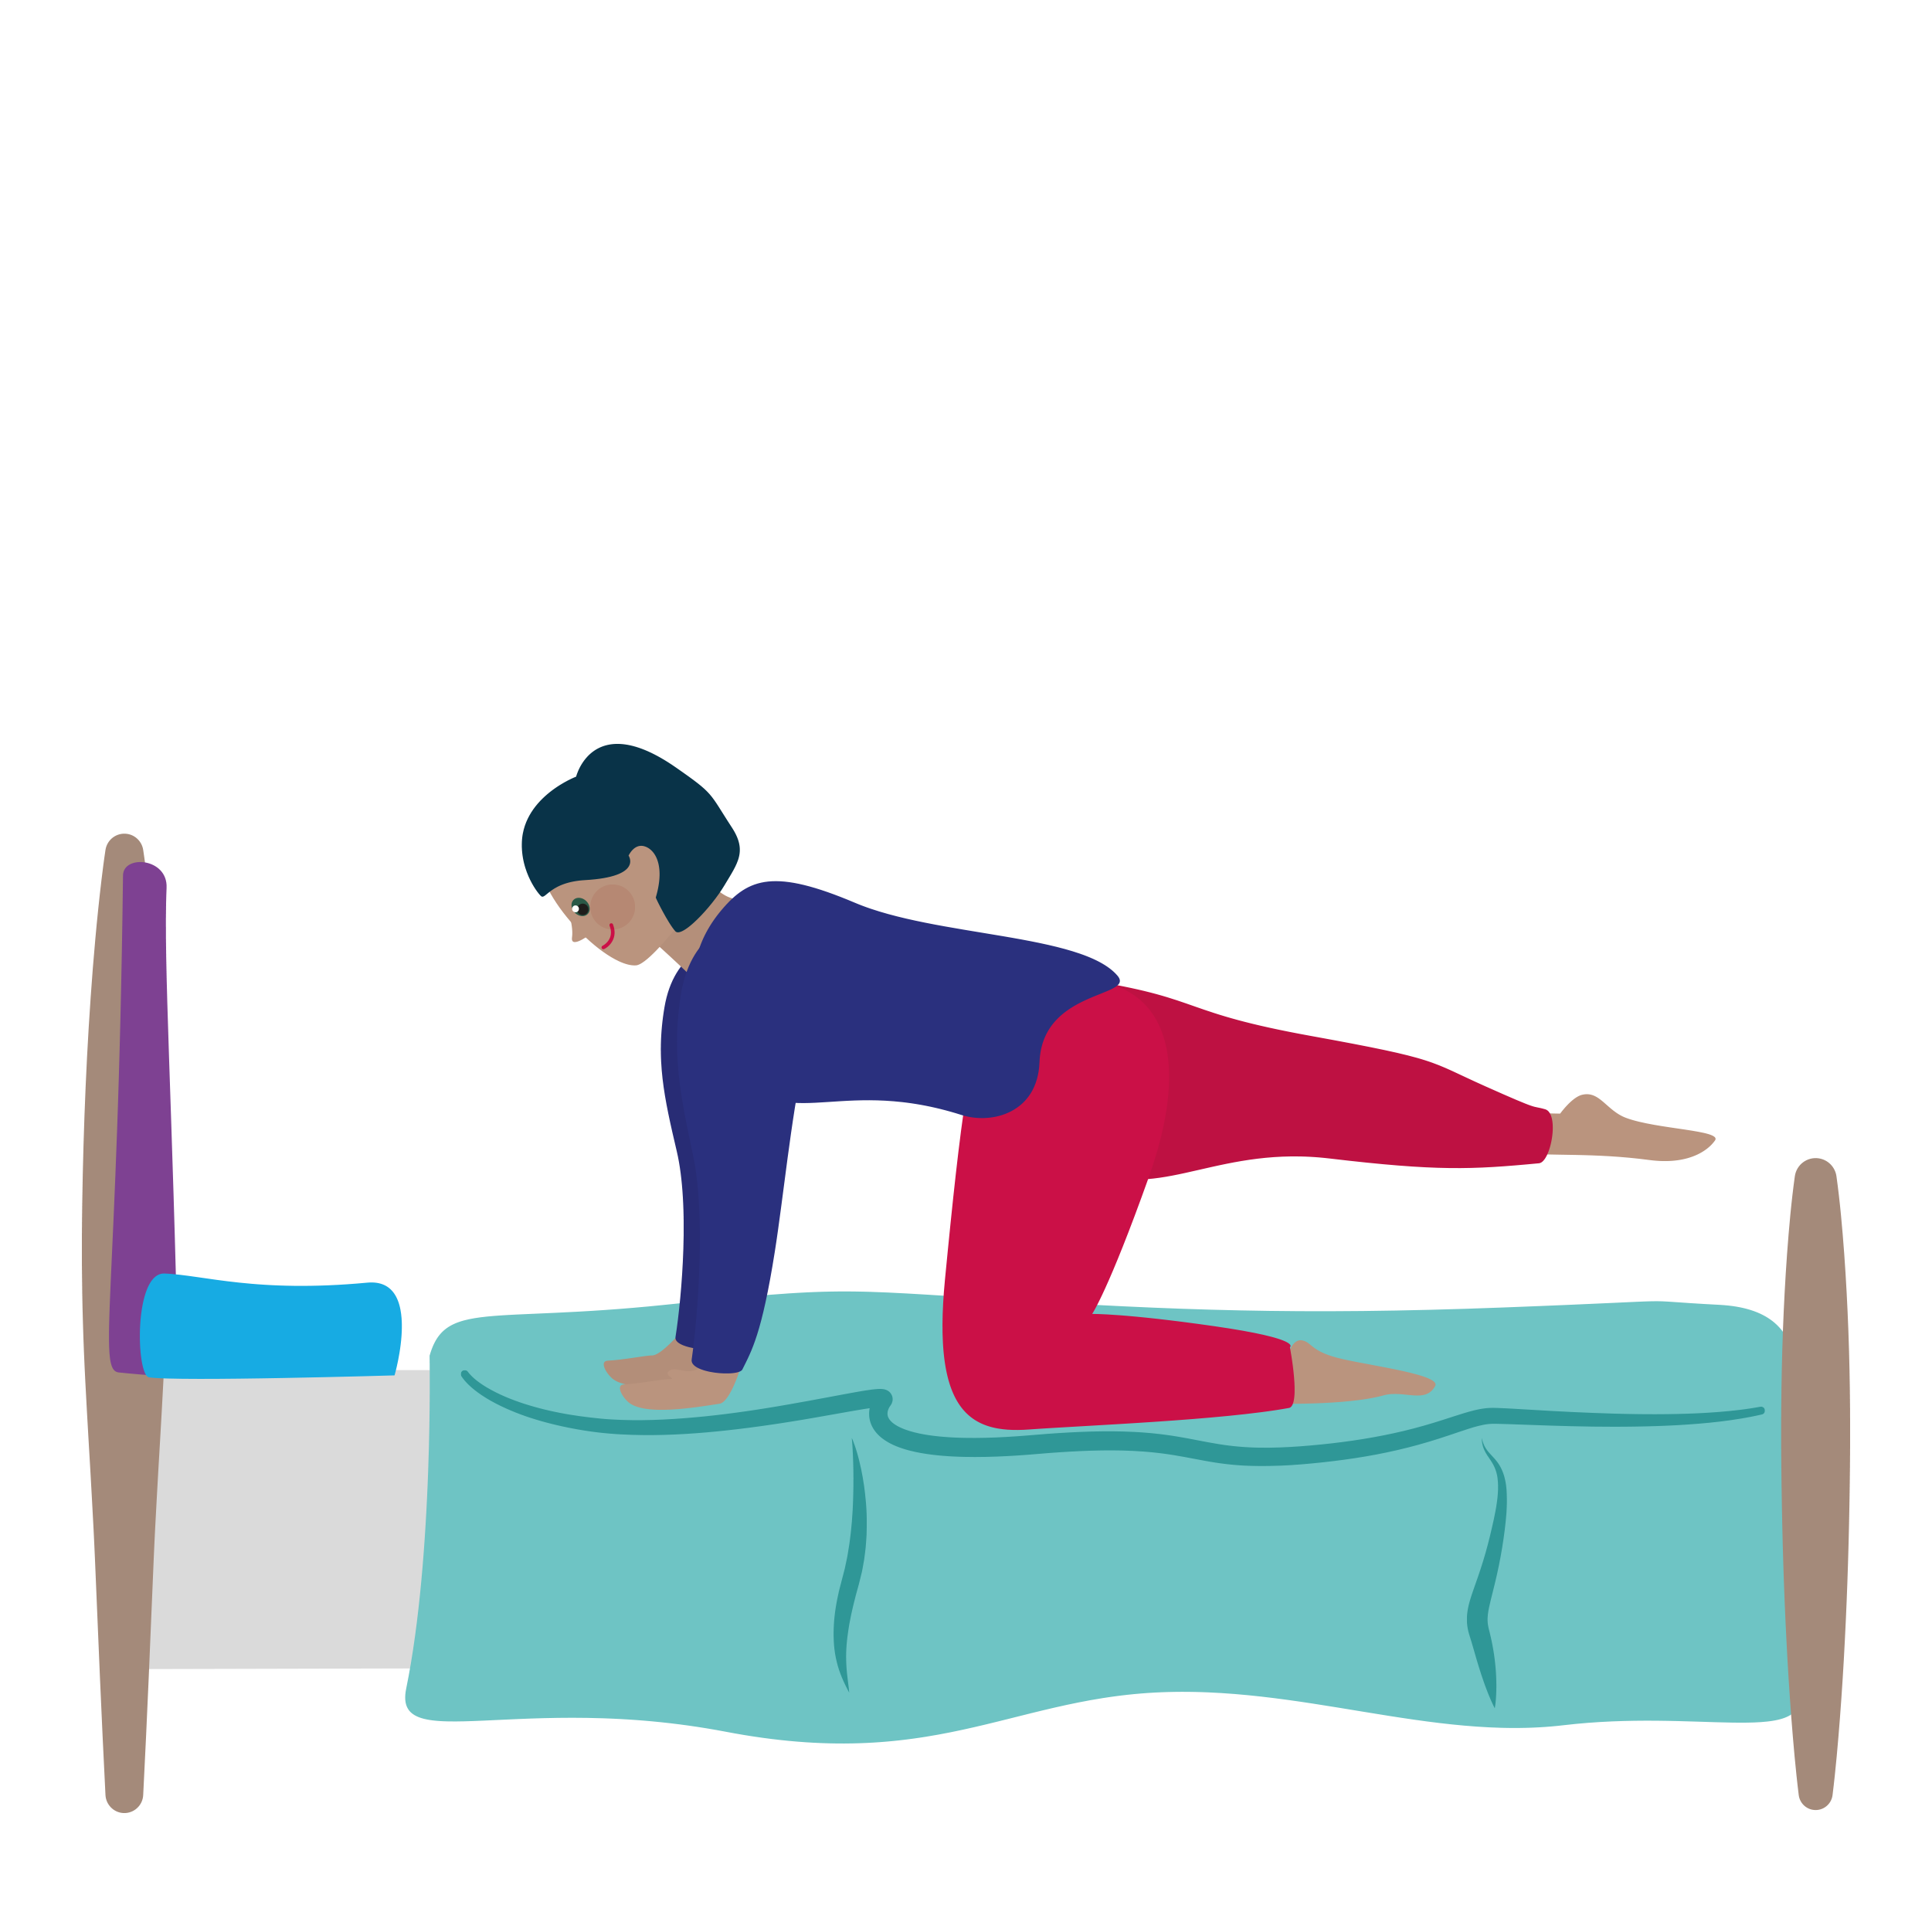 Person doing yoga on a bed